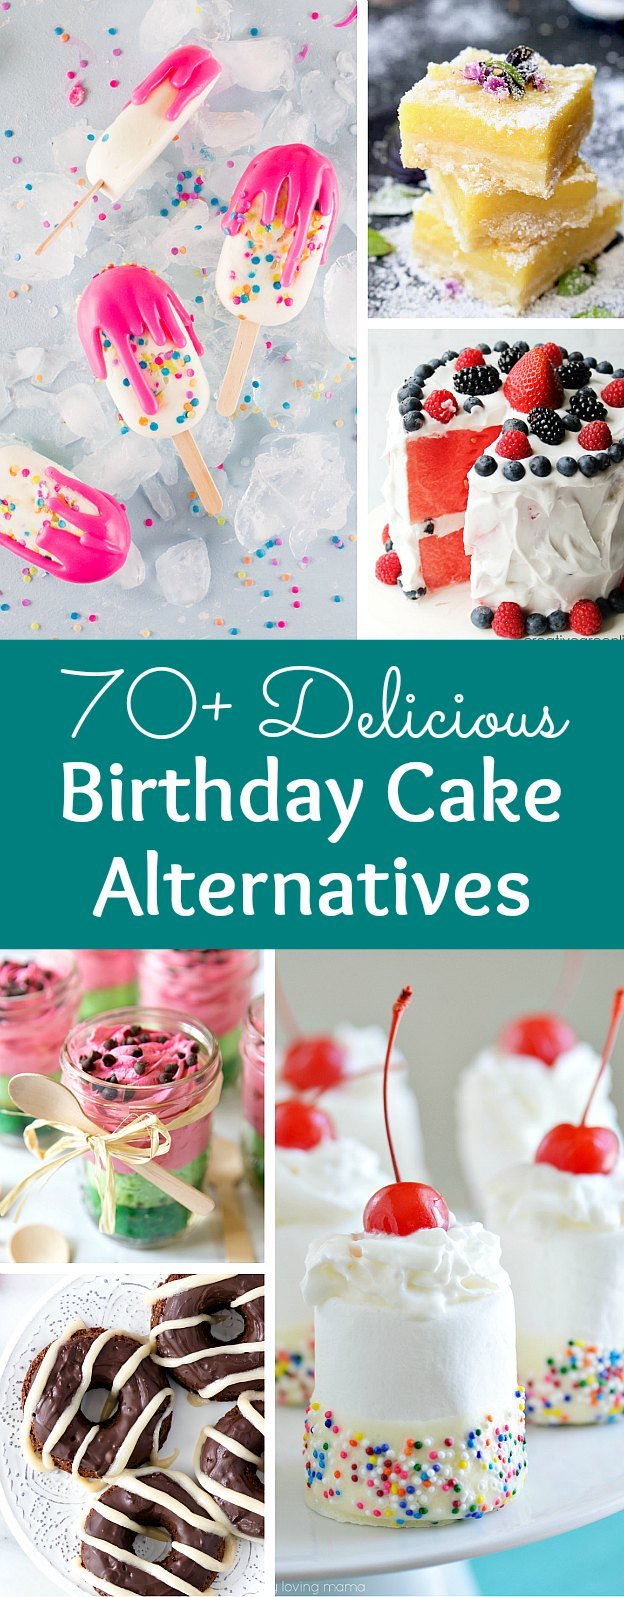 Astounding 70 Creative Birthday Cake Alternatives Hello Little Home Funny Birthday Cards Online Elaedamsfinfo